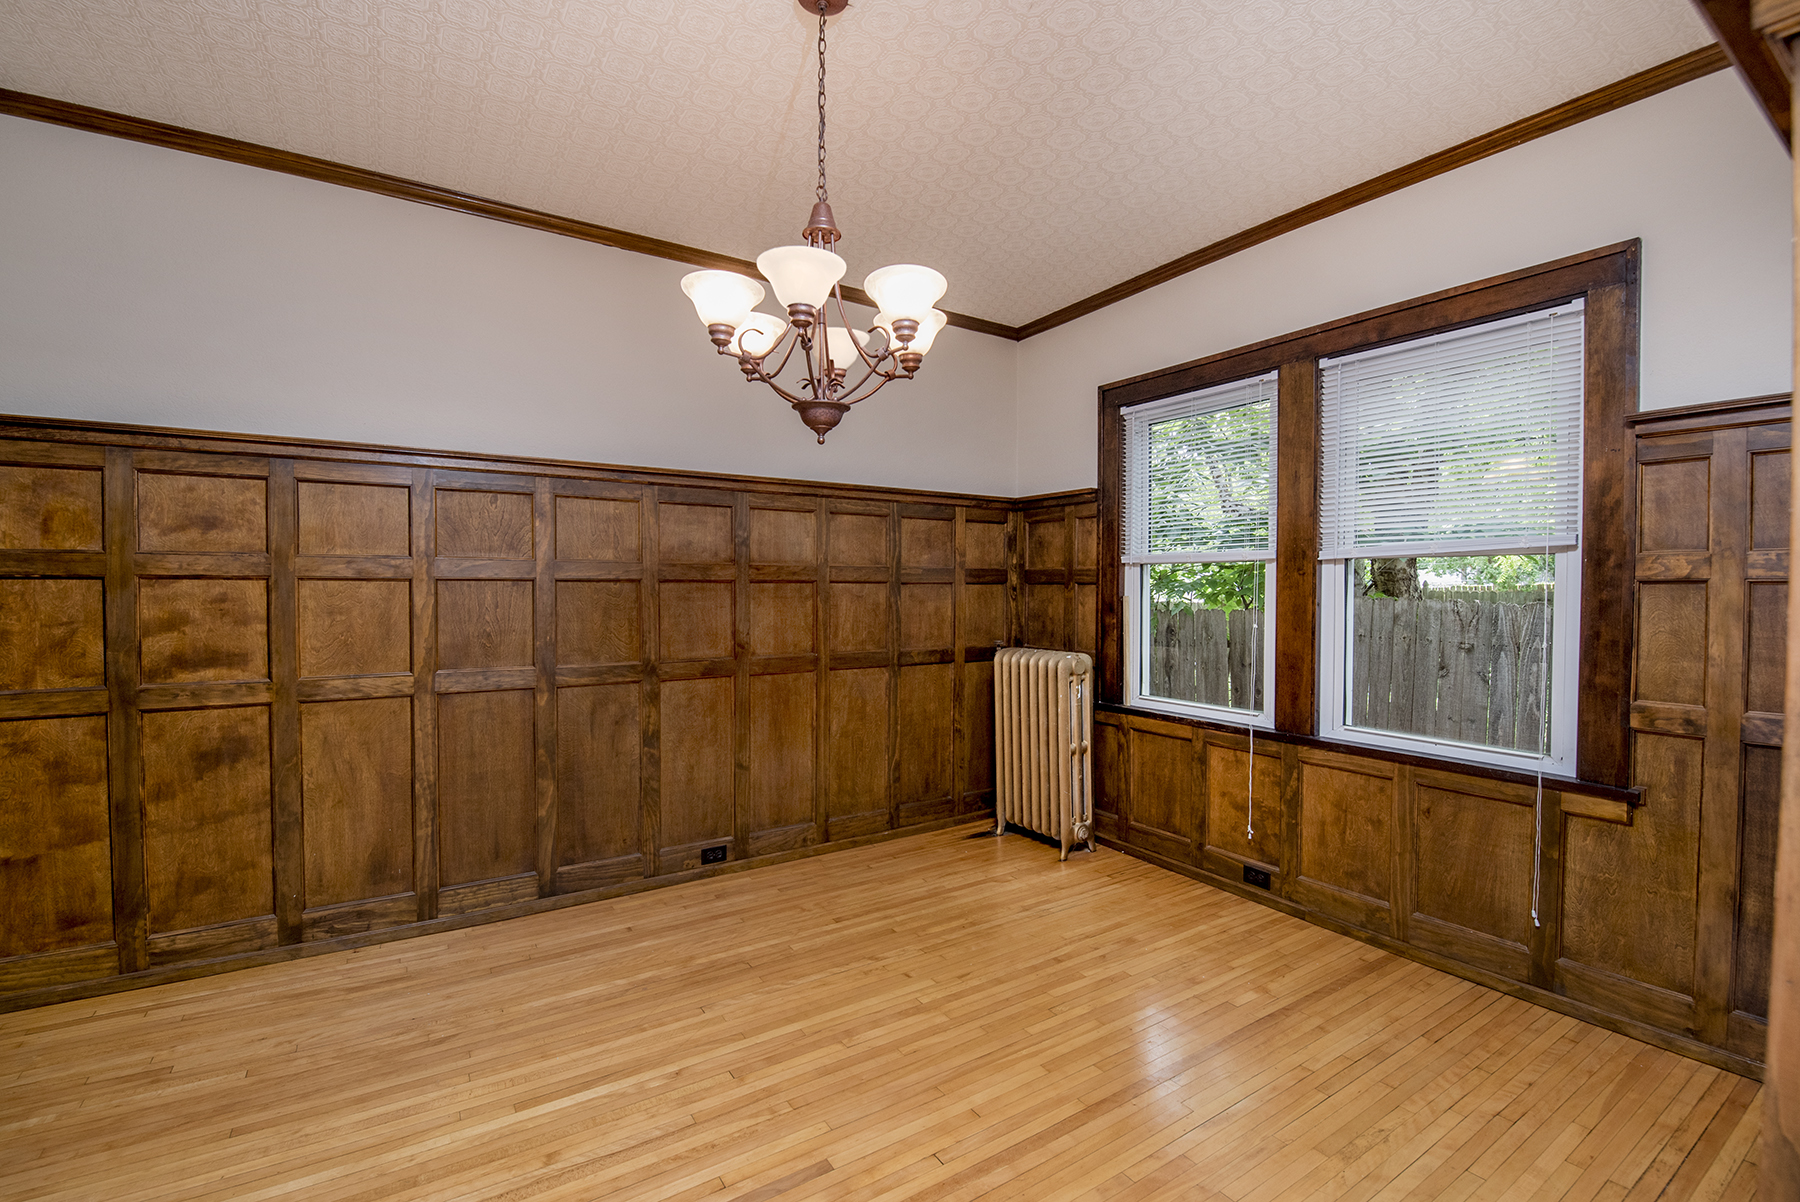 Formal dining room is adjacent to the kitchen.